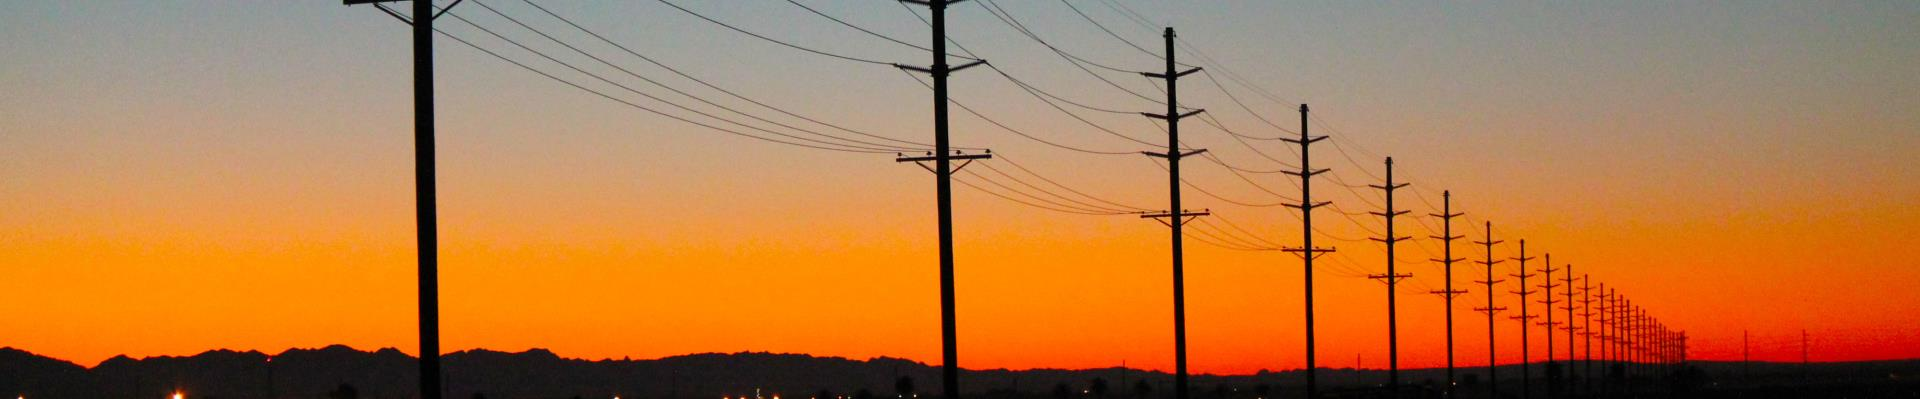 power line during sunrise